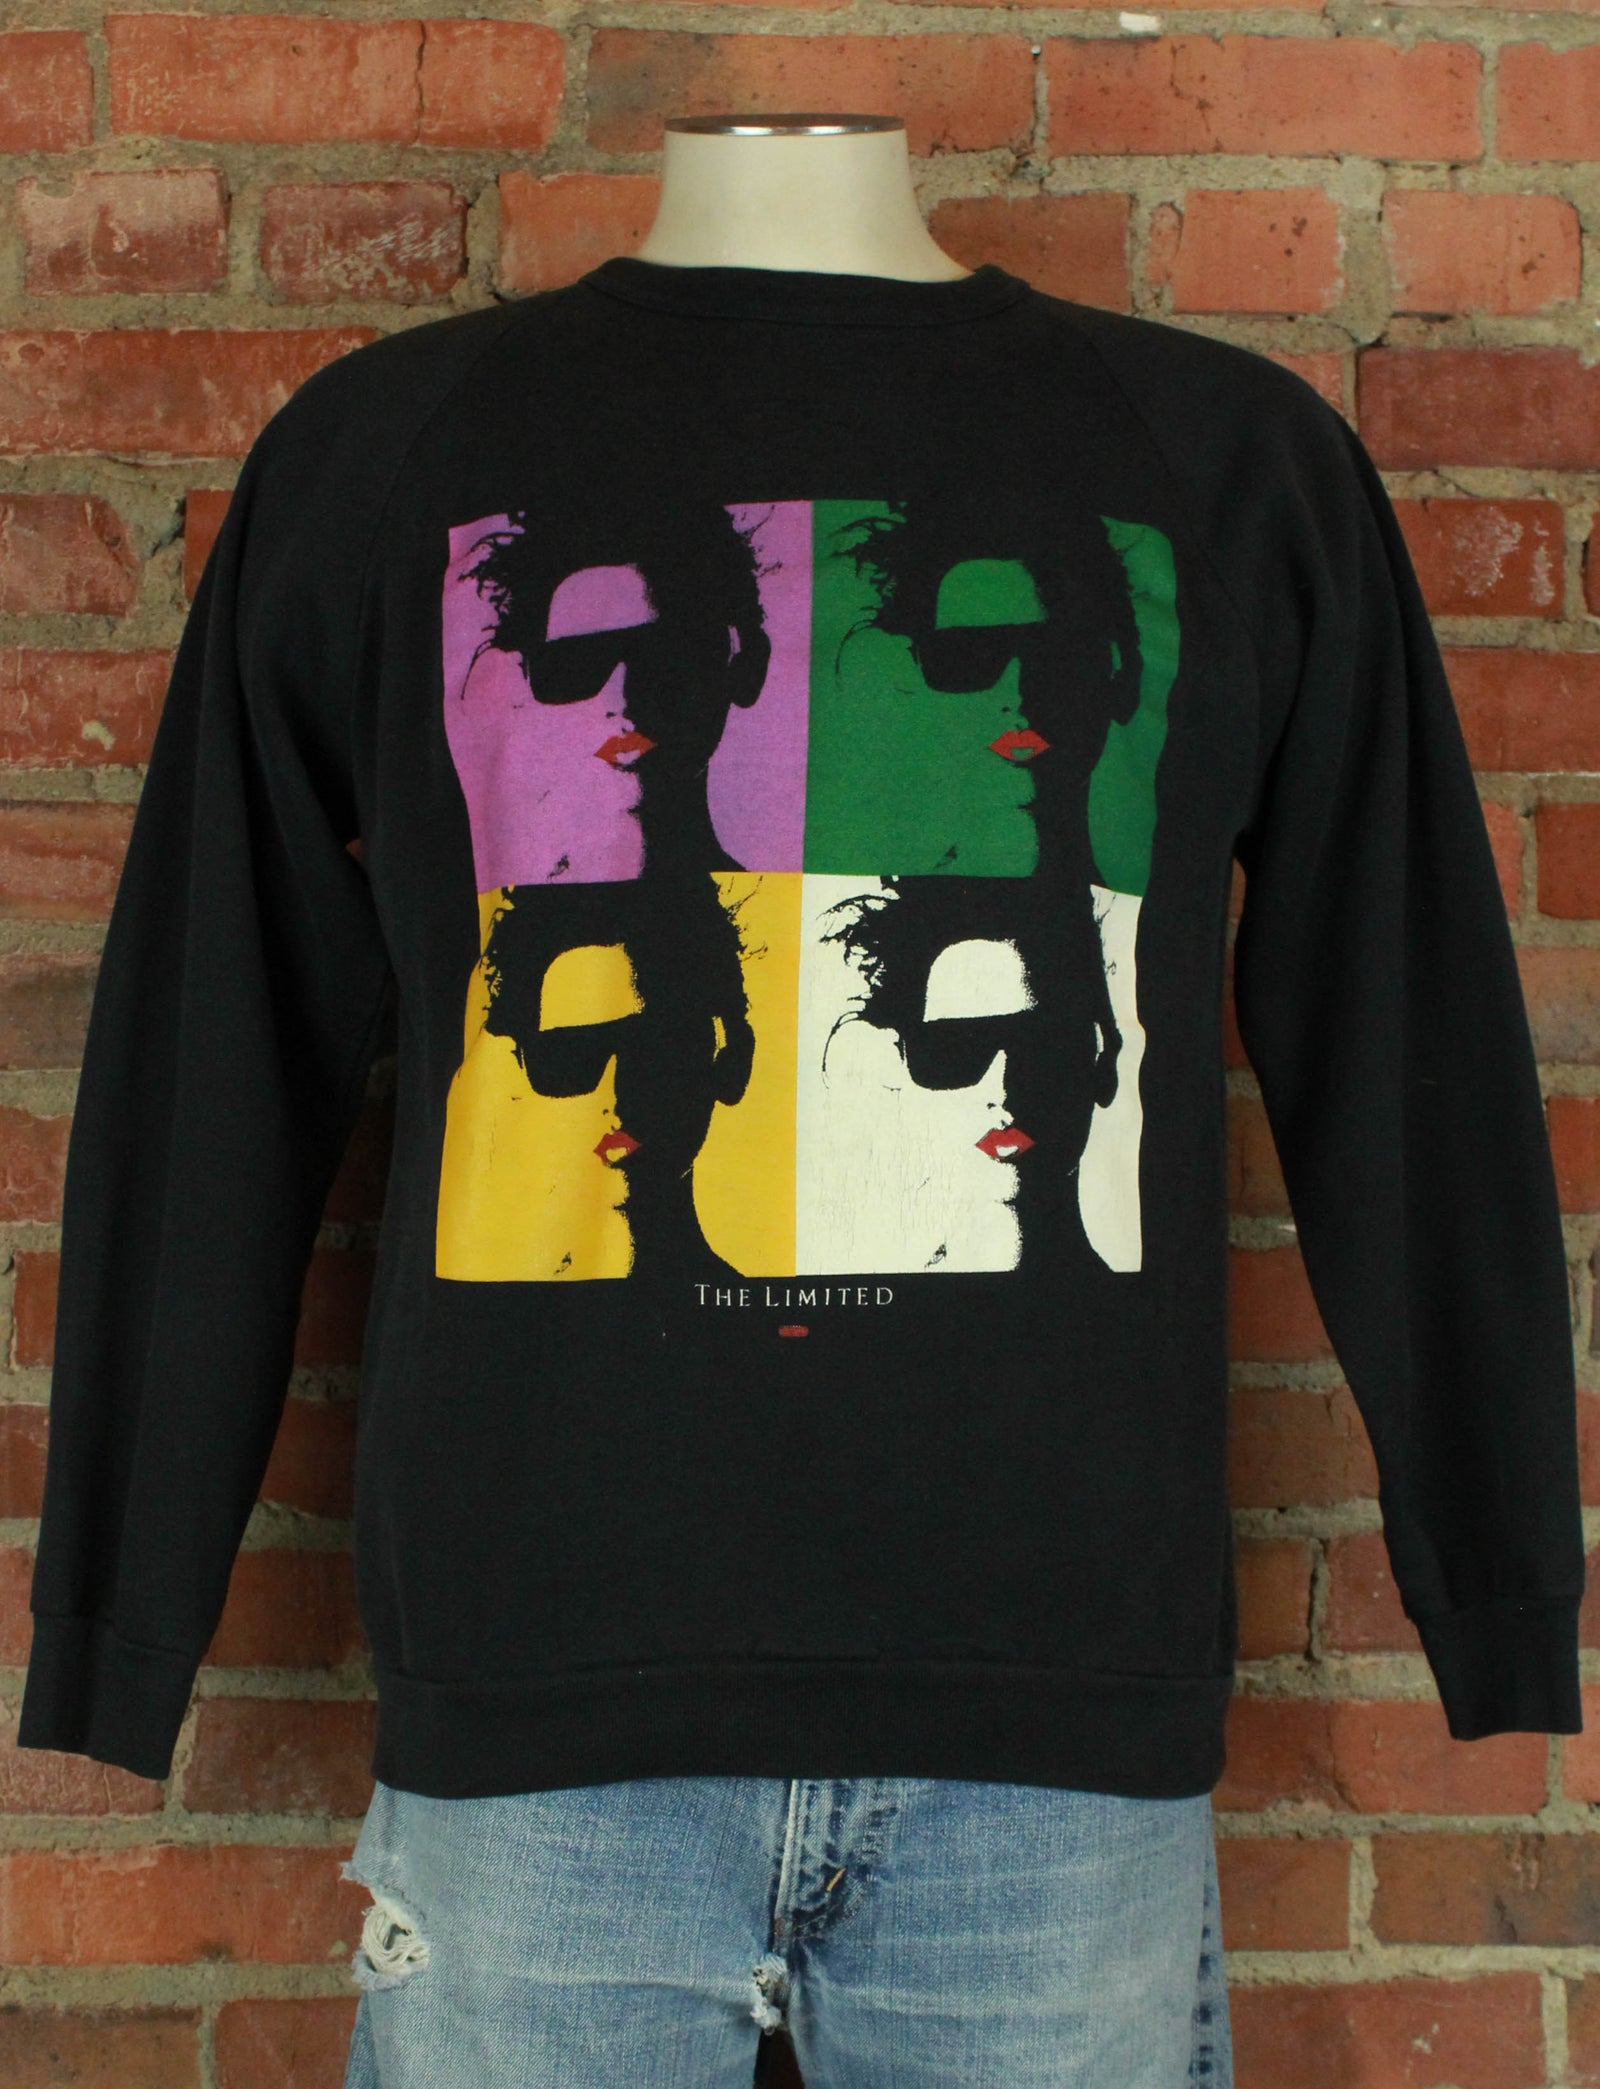 Vintage 80's The Limited Black Pullover Graphic Sweatshirt - Large